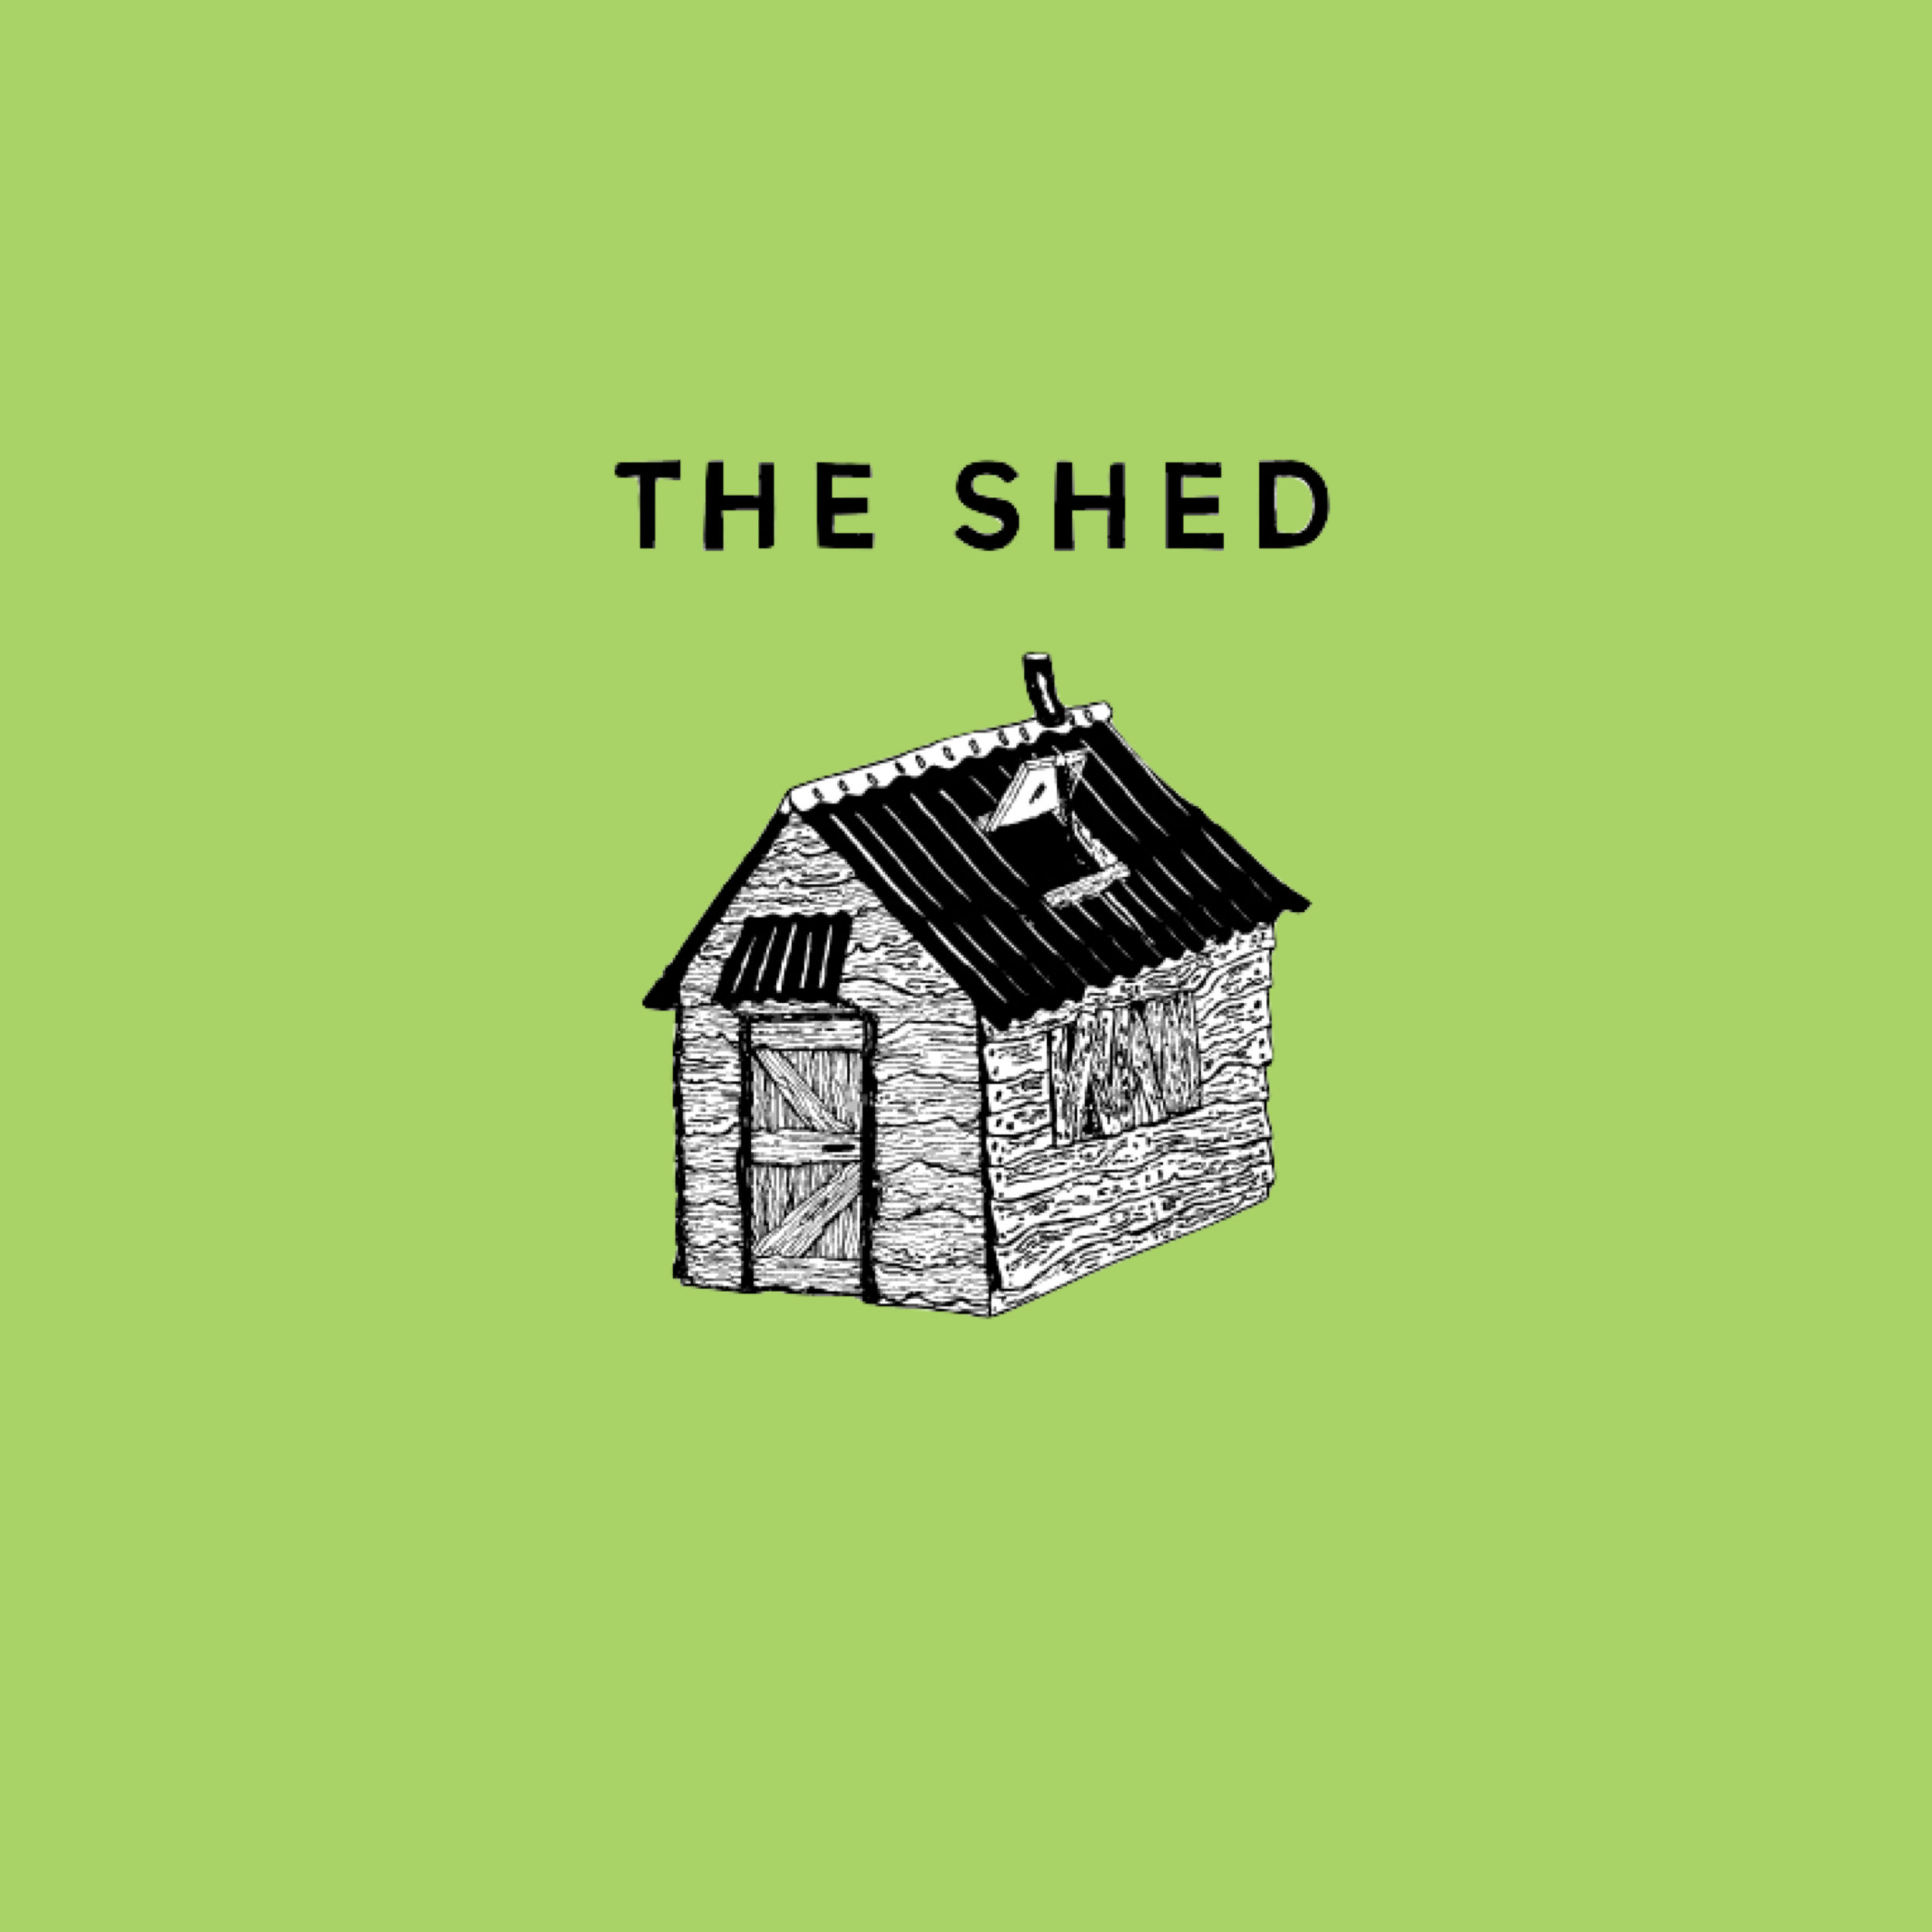 SHED SQUARE GREEN.jpg